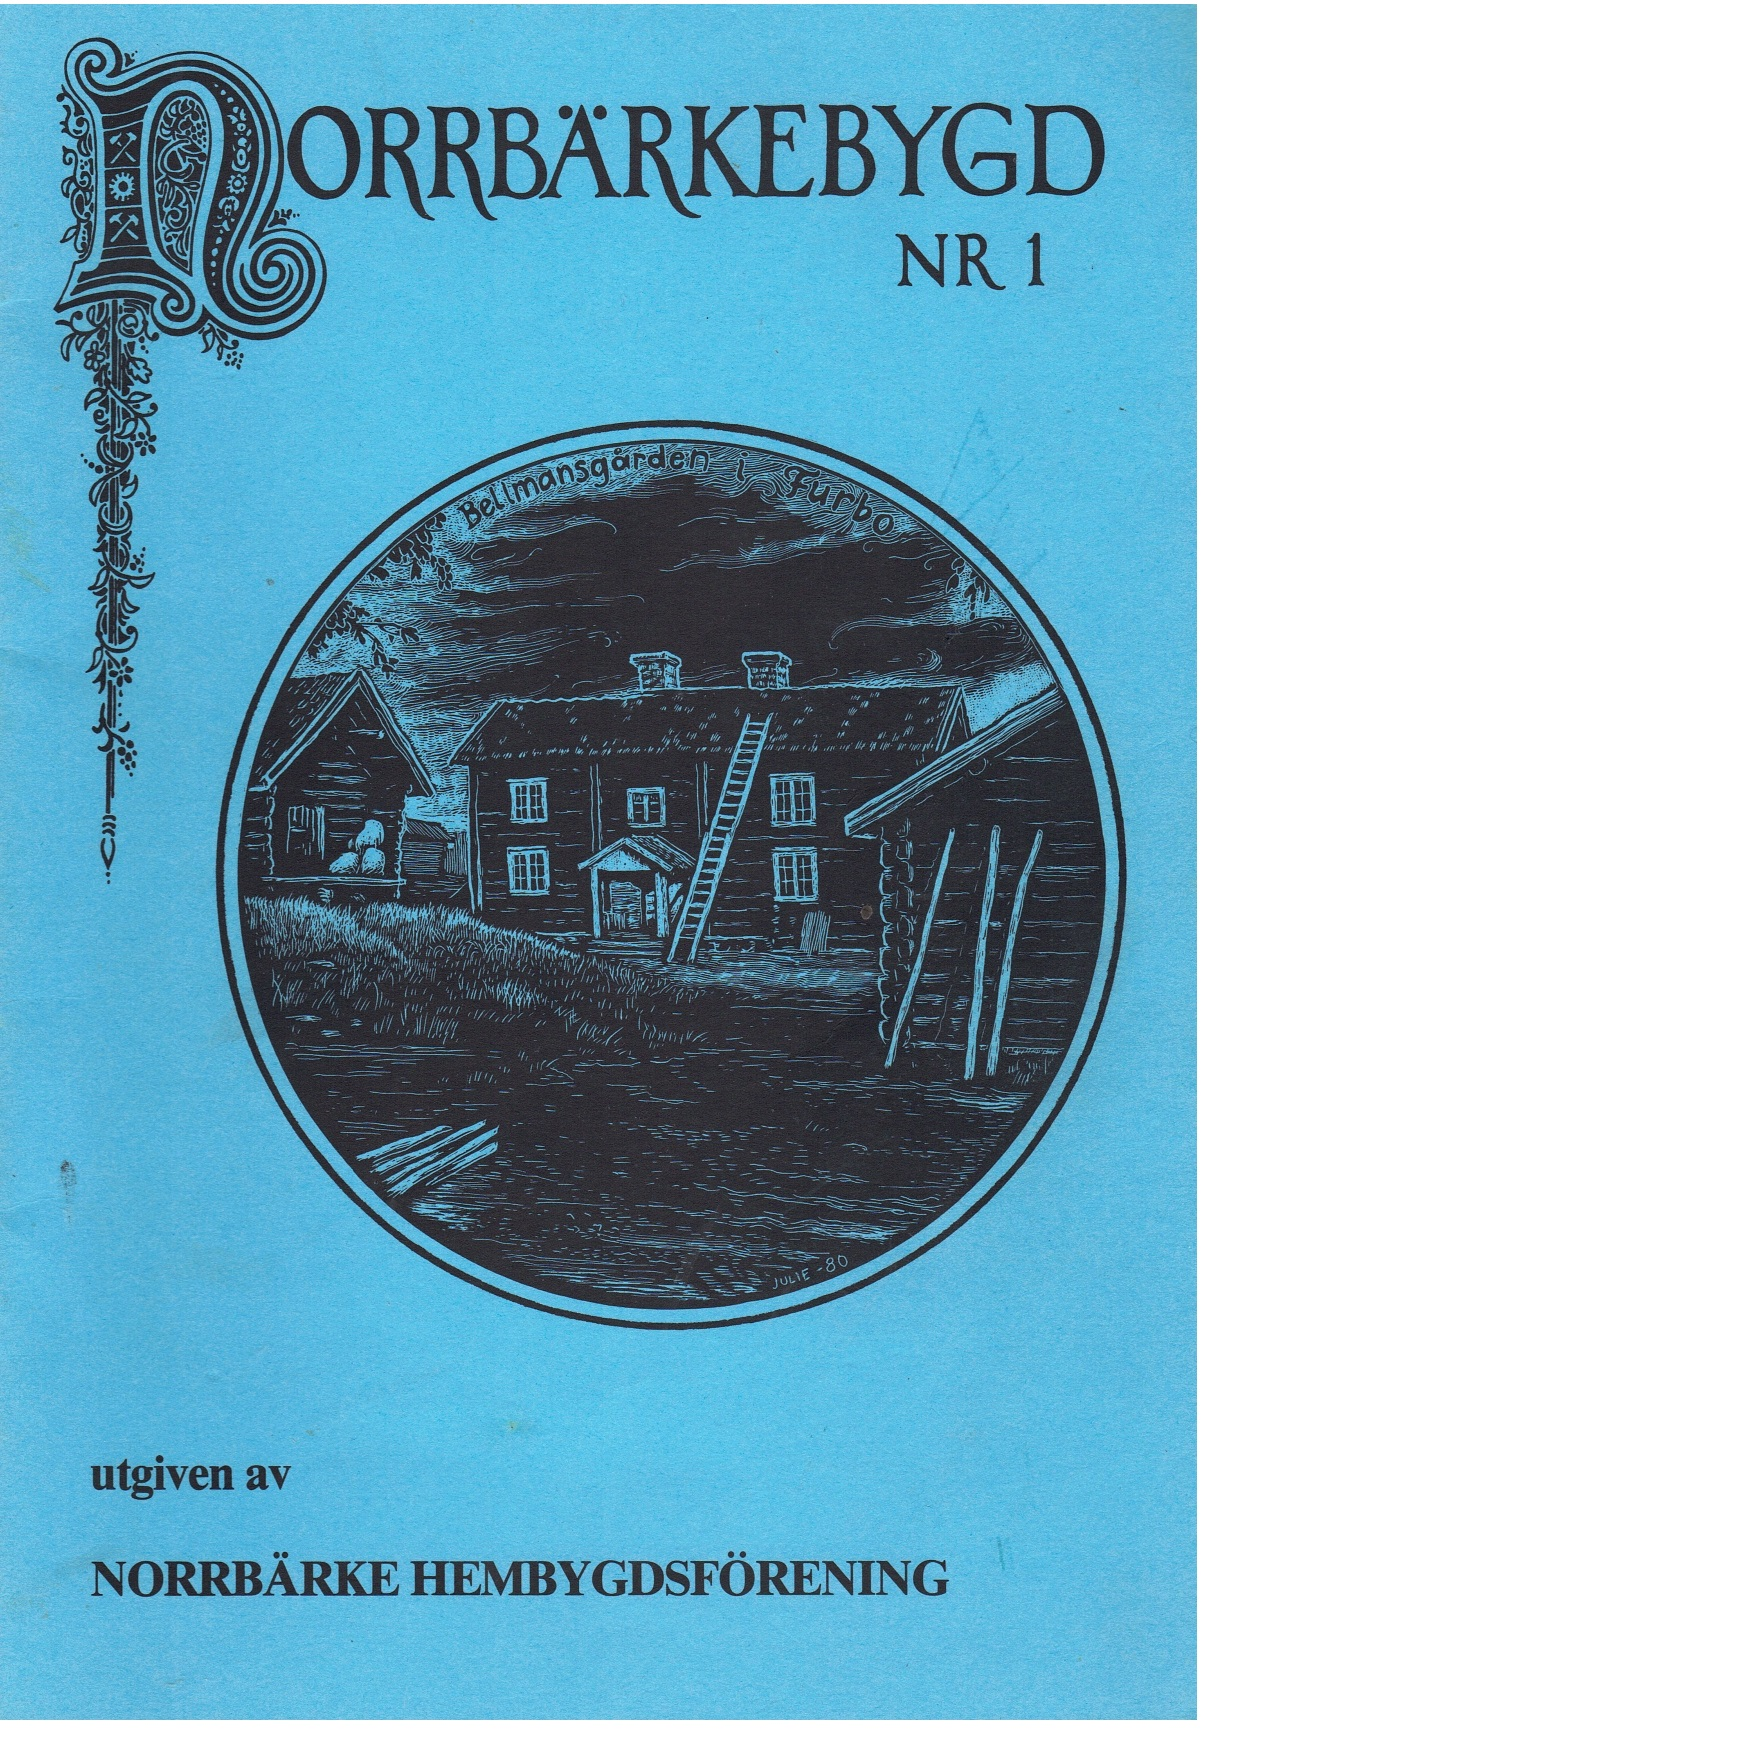 Norrbärkebygd 1 - Red.